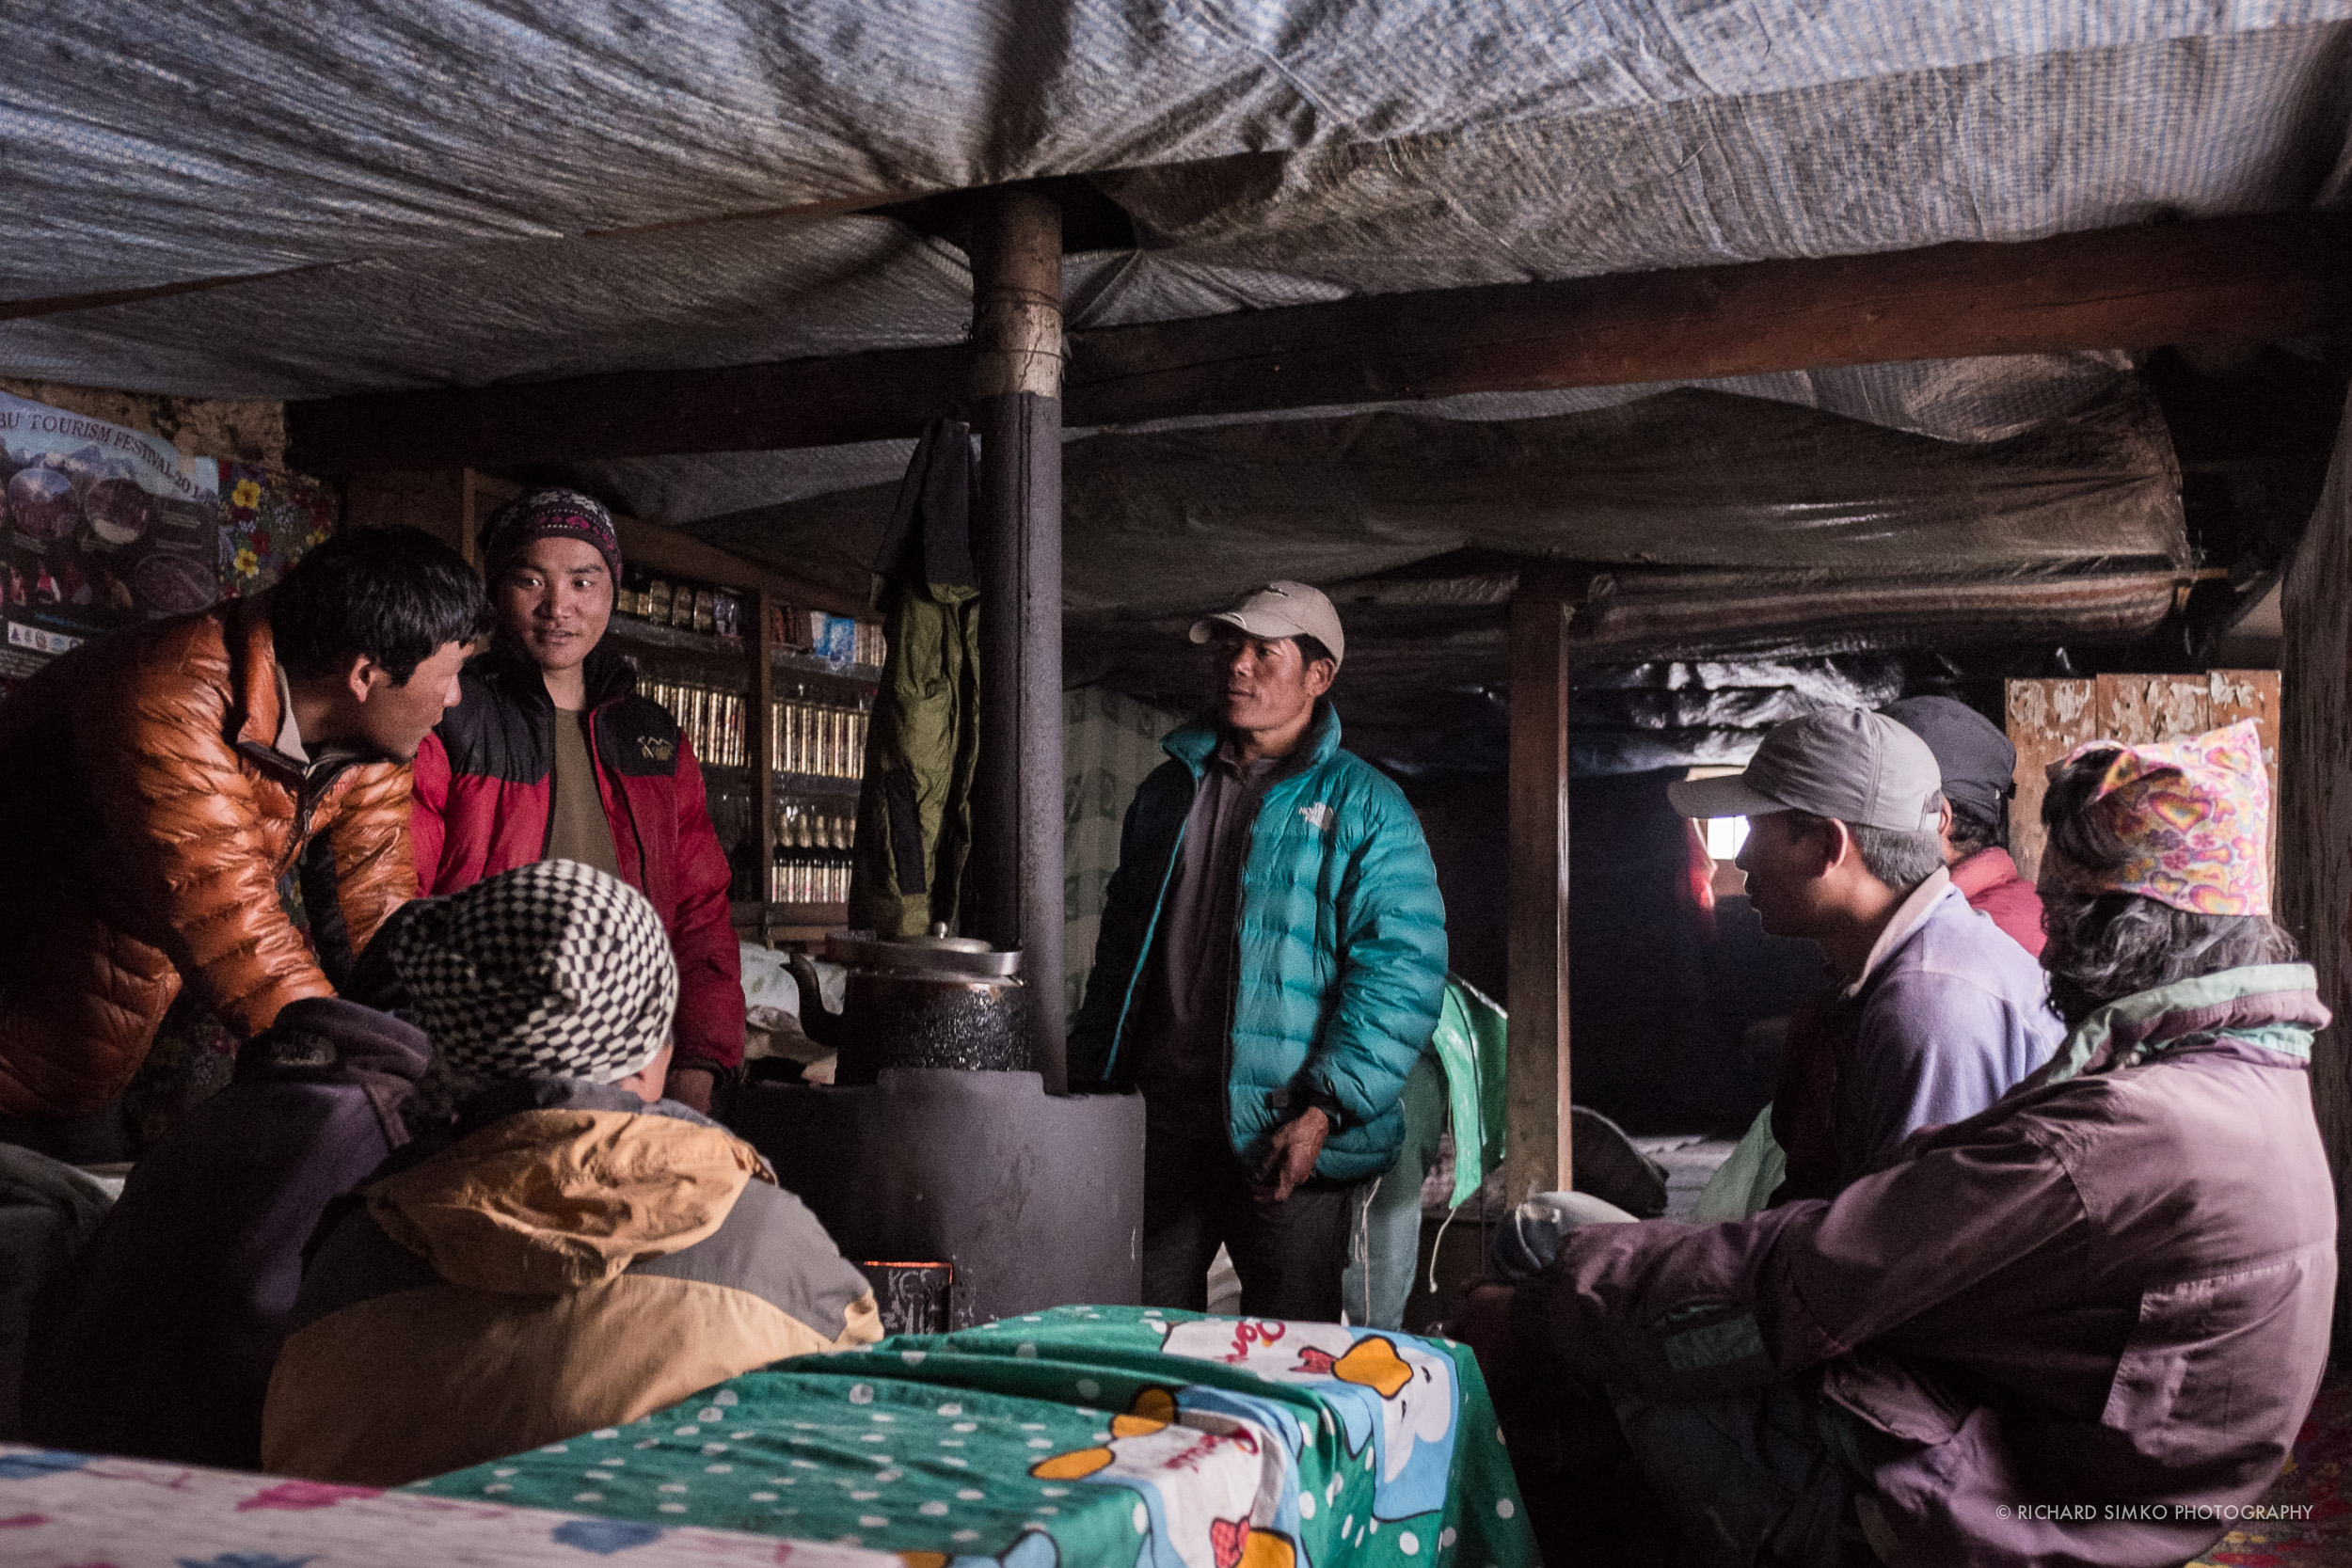 Sherpas gathered around fire place talking and warming up during the cold evening.